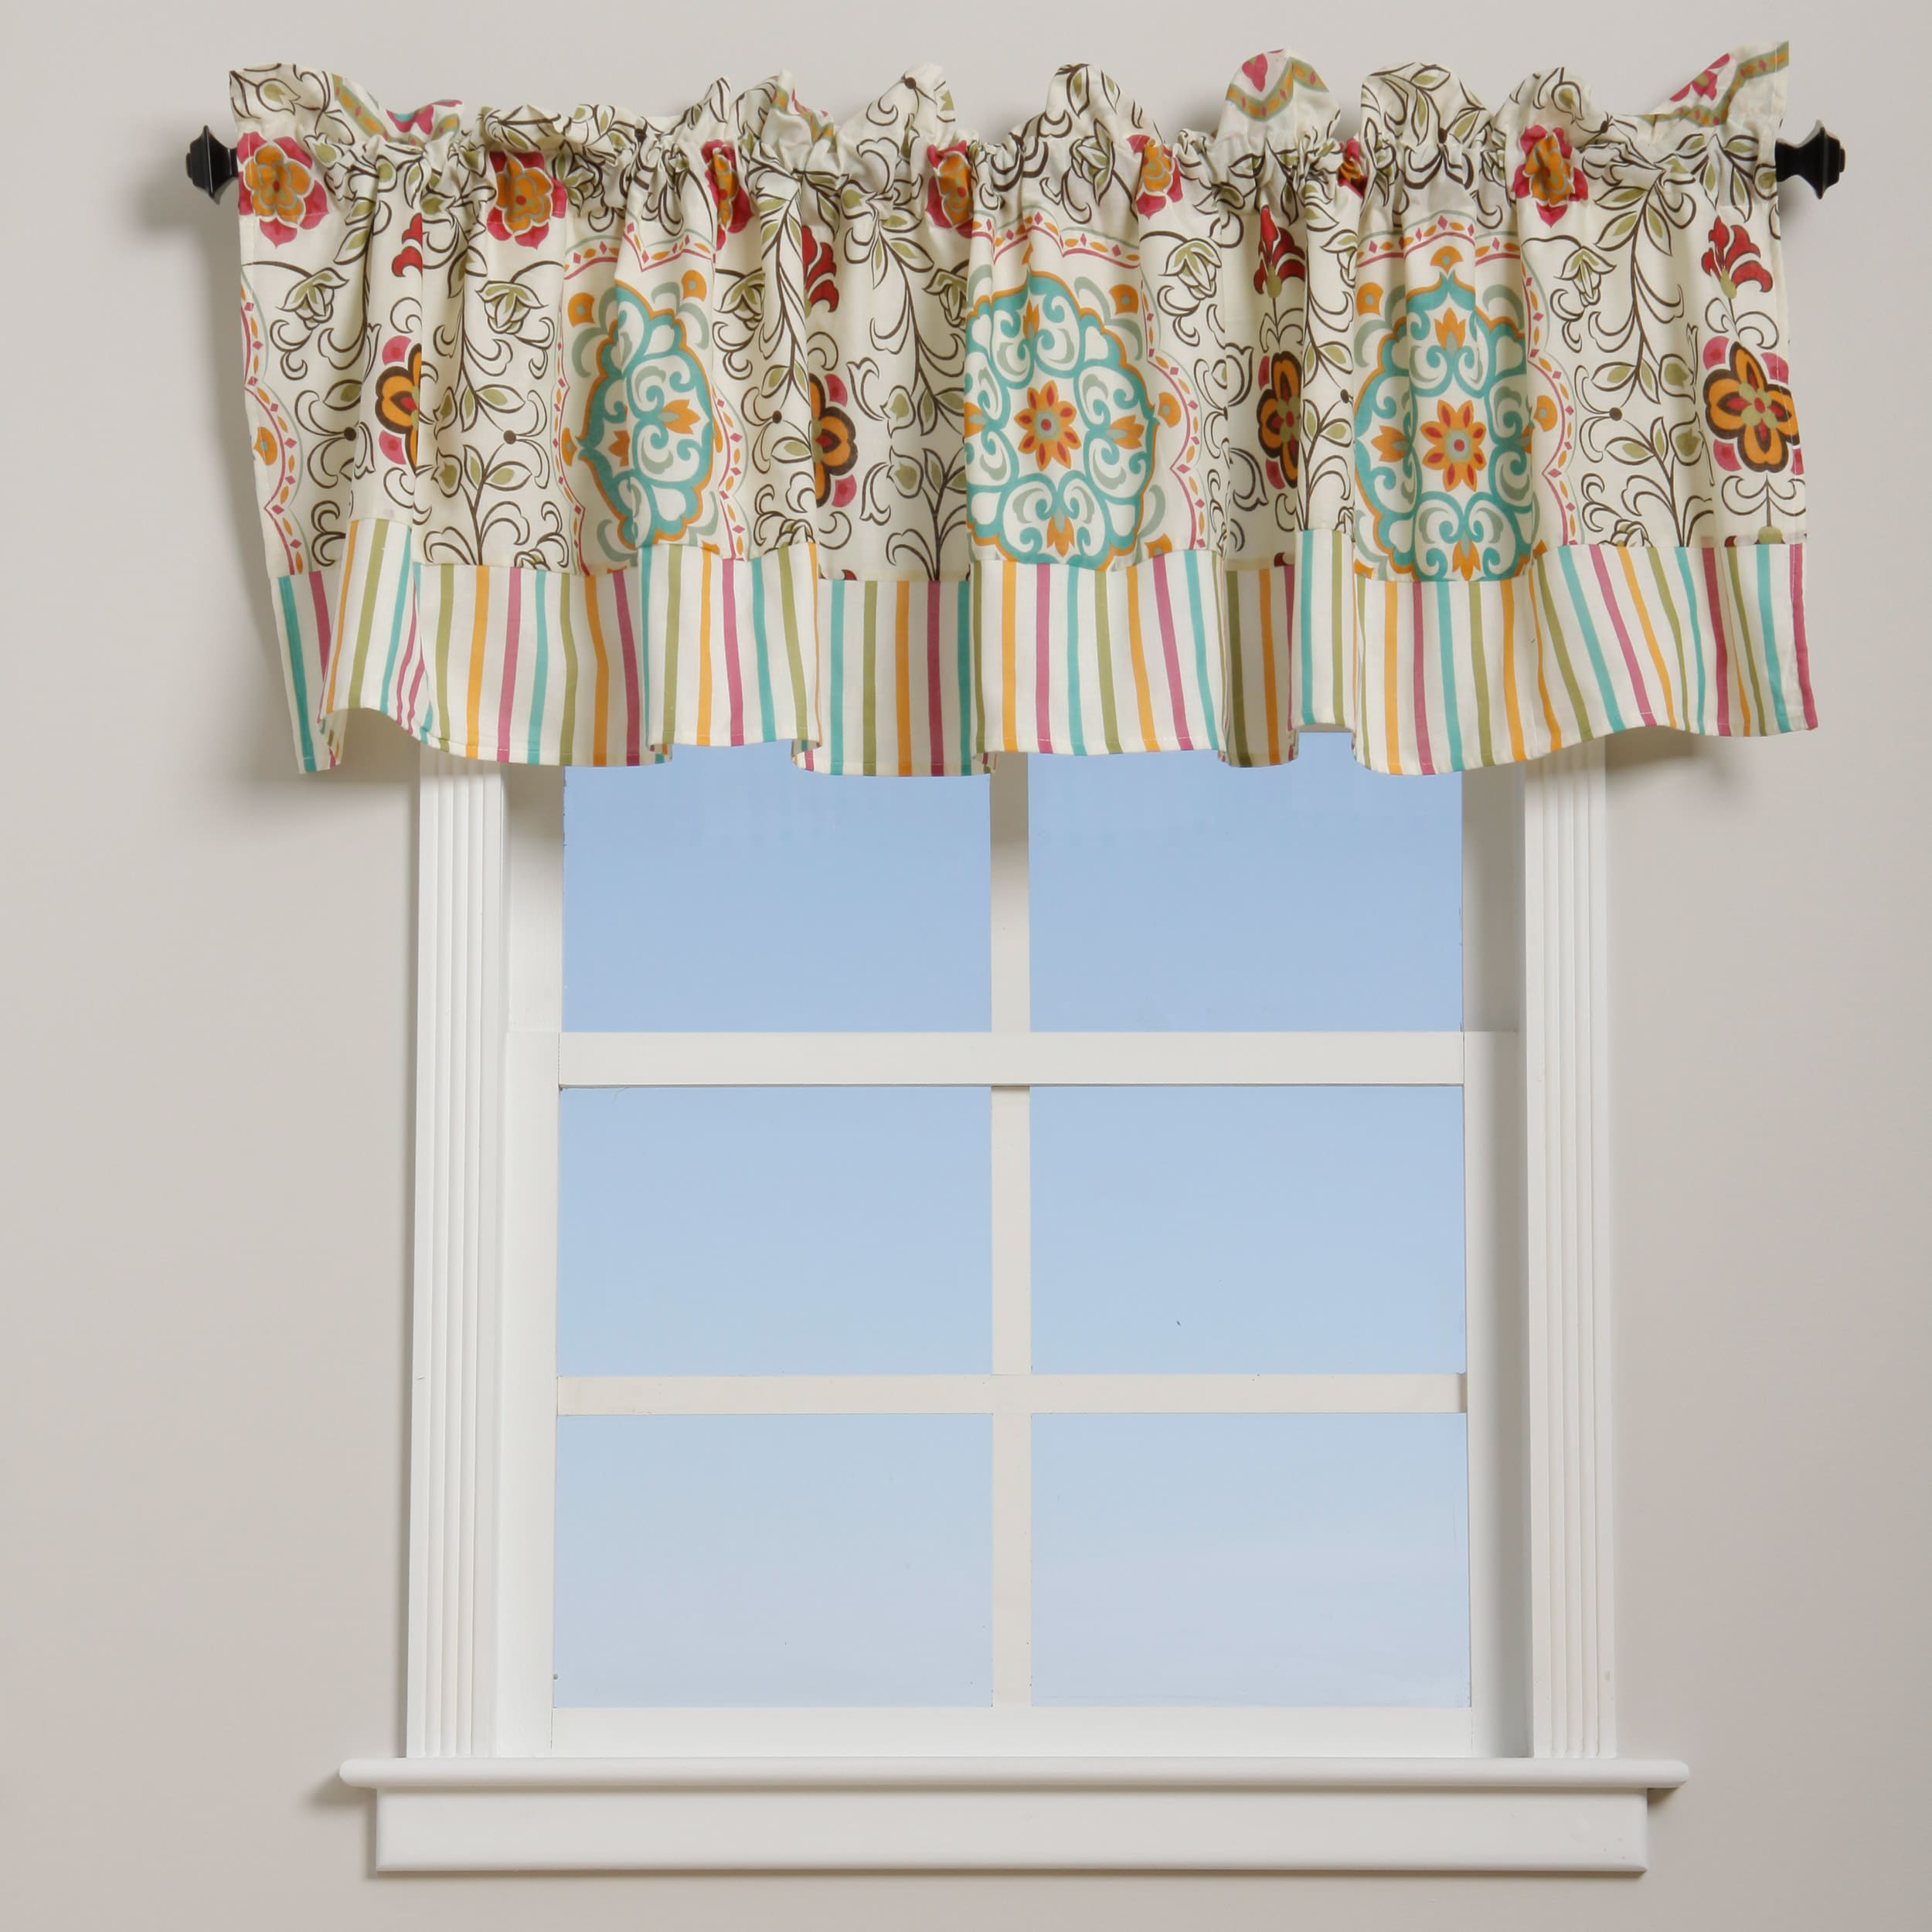 Esprit Spice Floral and Striped Cotton Window Valance at Sears.com